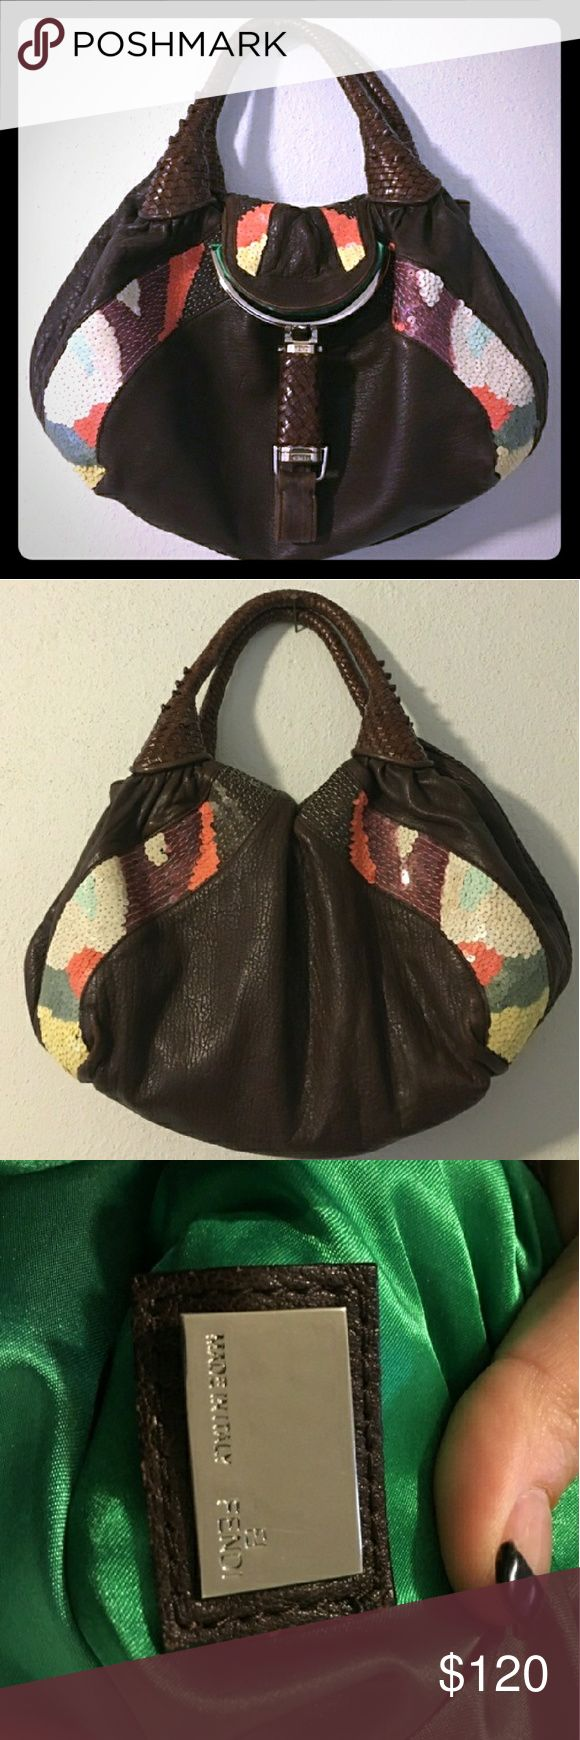 Rare Brown leather Sequined Bag FENDI inspired. Soft genuine leather shoulder bag.  Price reflects authenticity.  In great condition other than the compartment closure has a hard time staying closed. Fendi Bags Shoulder Bags